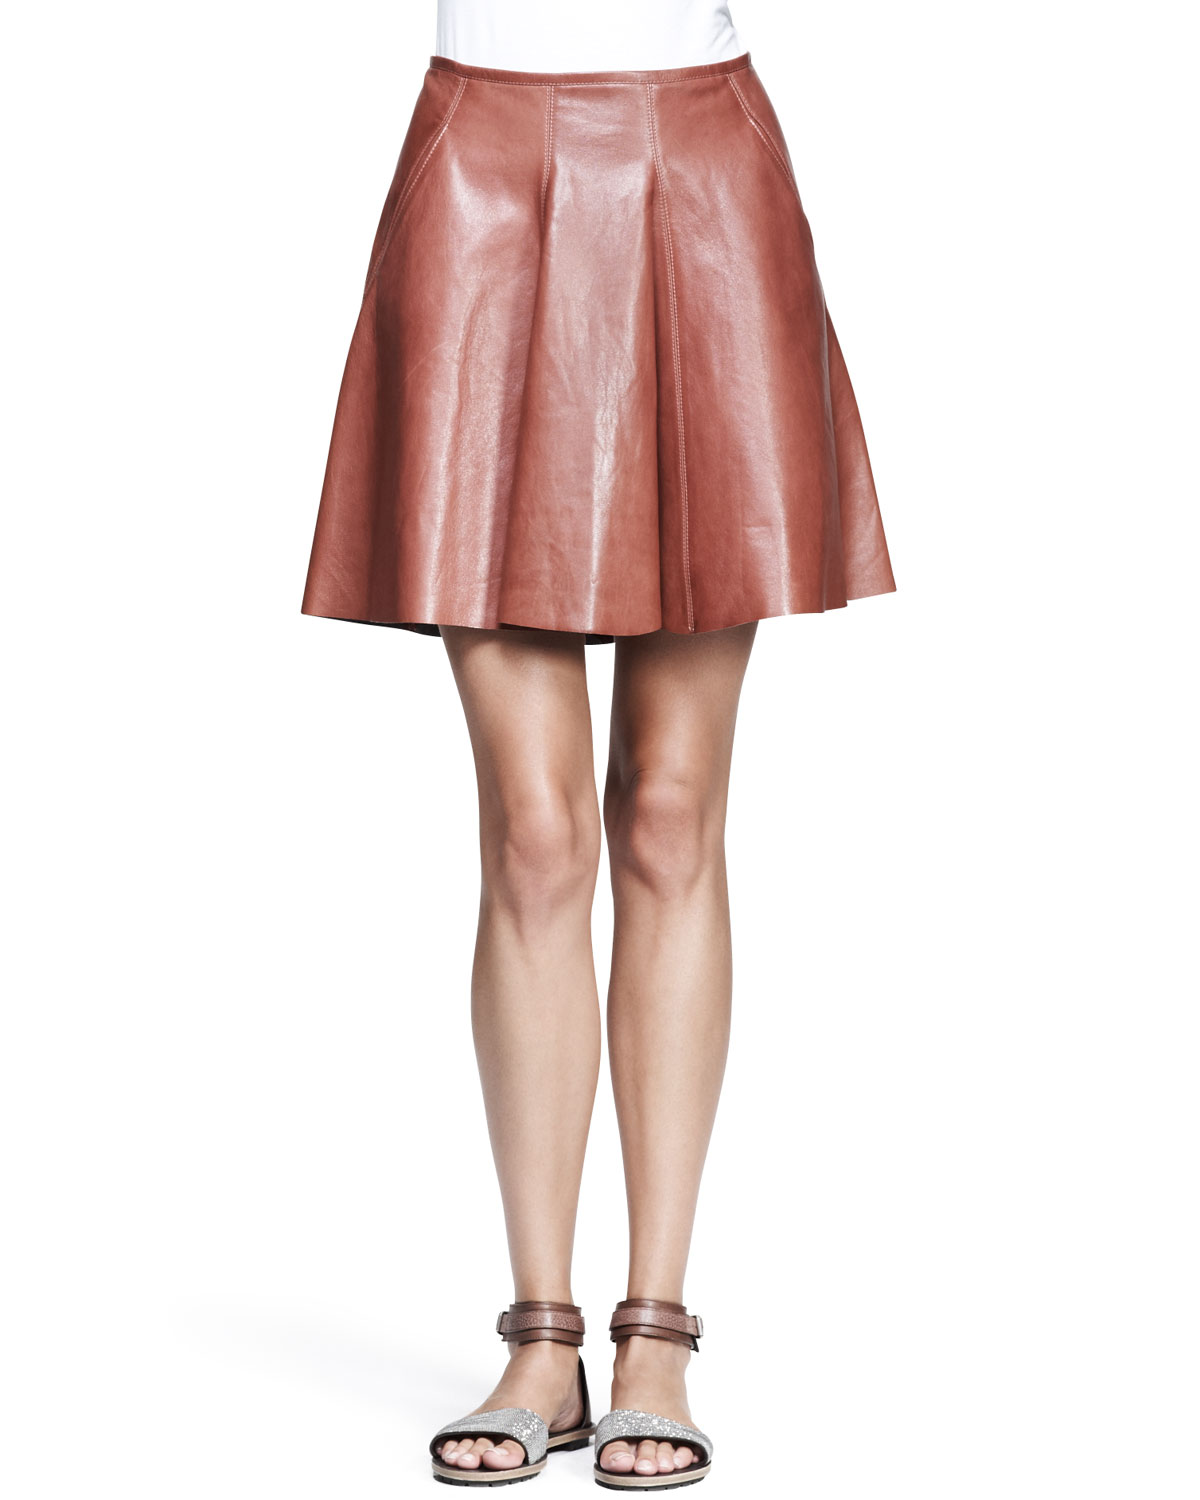 Womens Shiny Leather Swing Skirt   Brunello Cucinelli   Red (44/8)